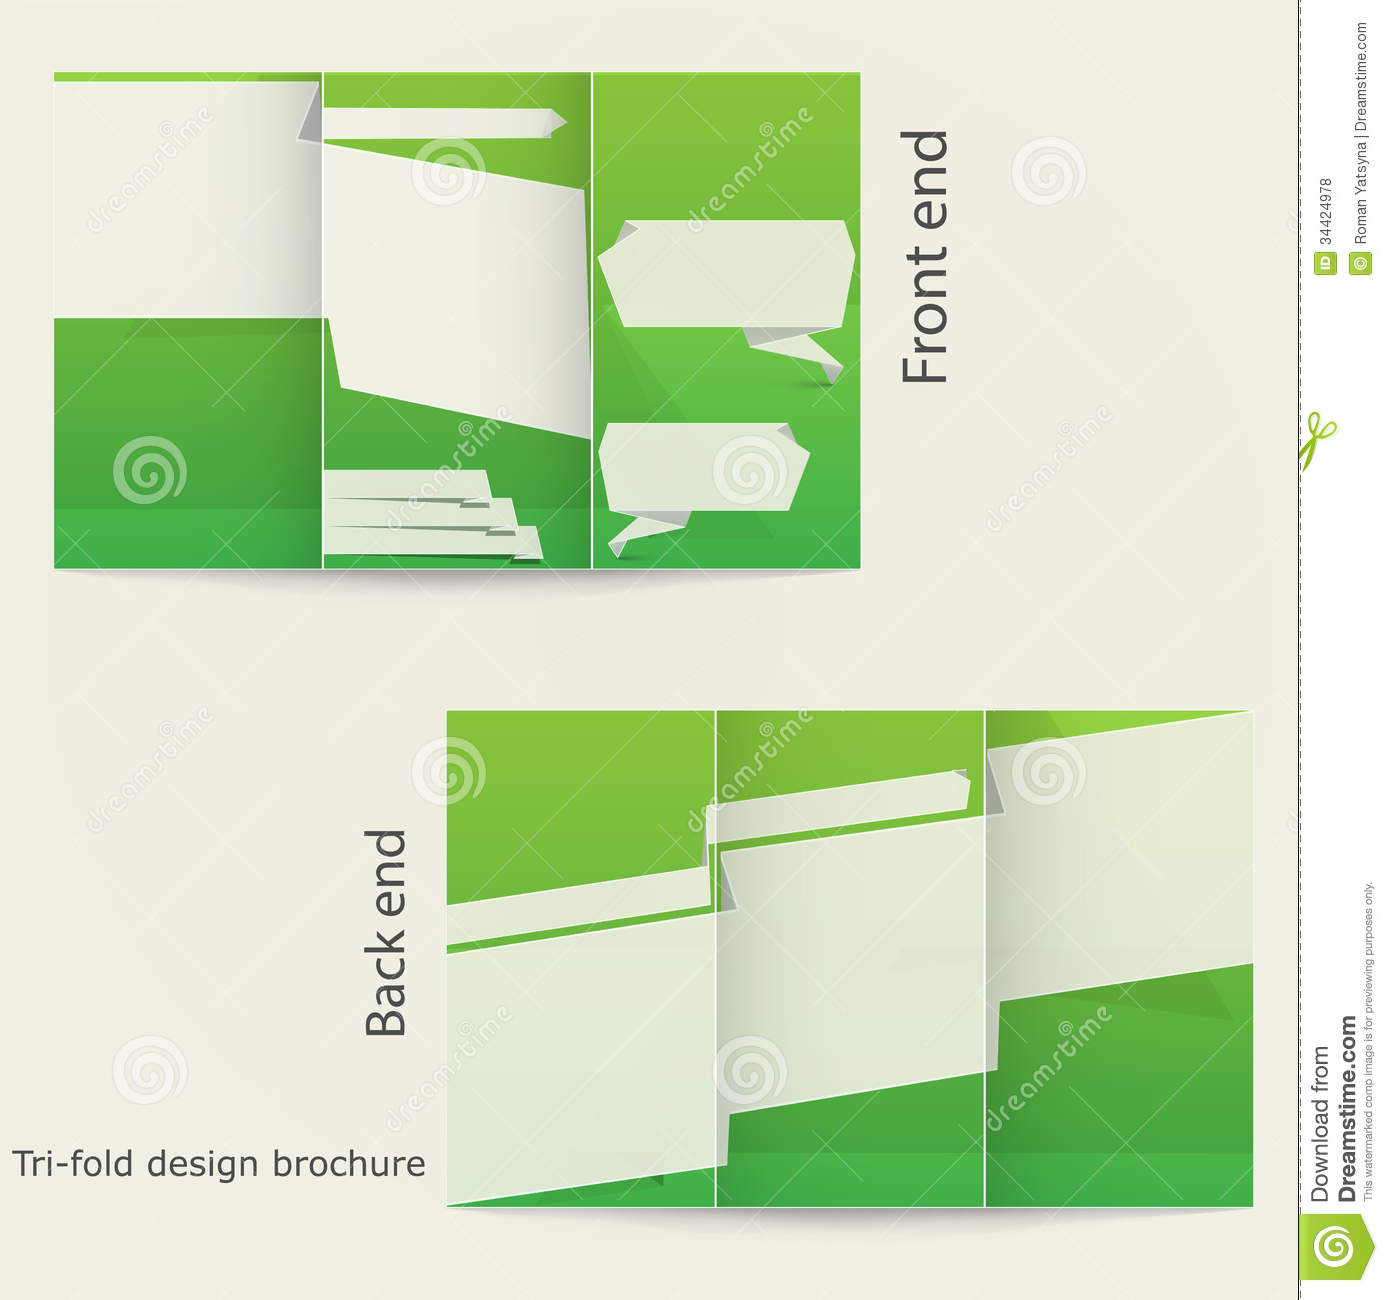 12 tri fold brochure template design images tri fold for Brochure templates tri fold